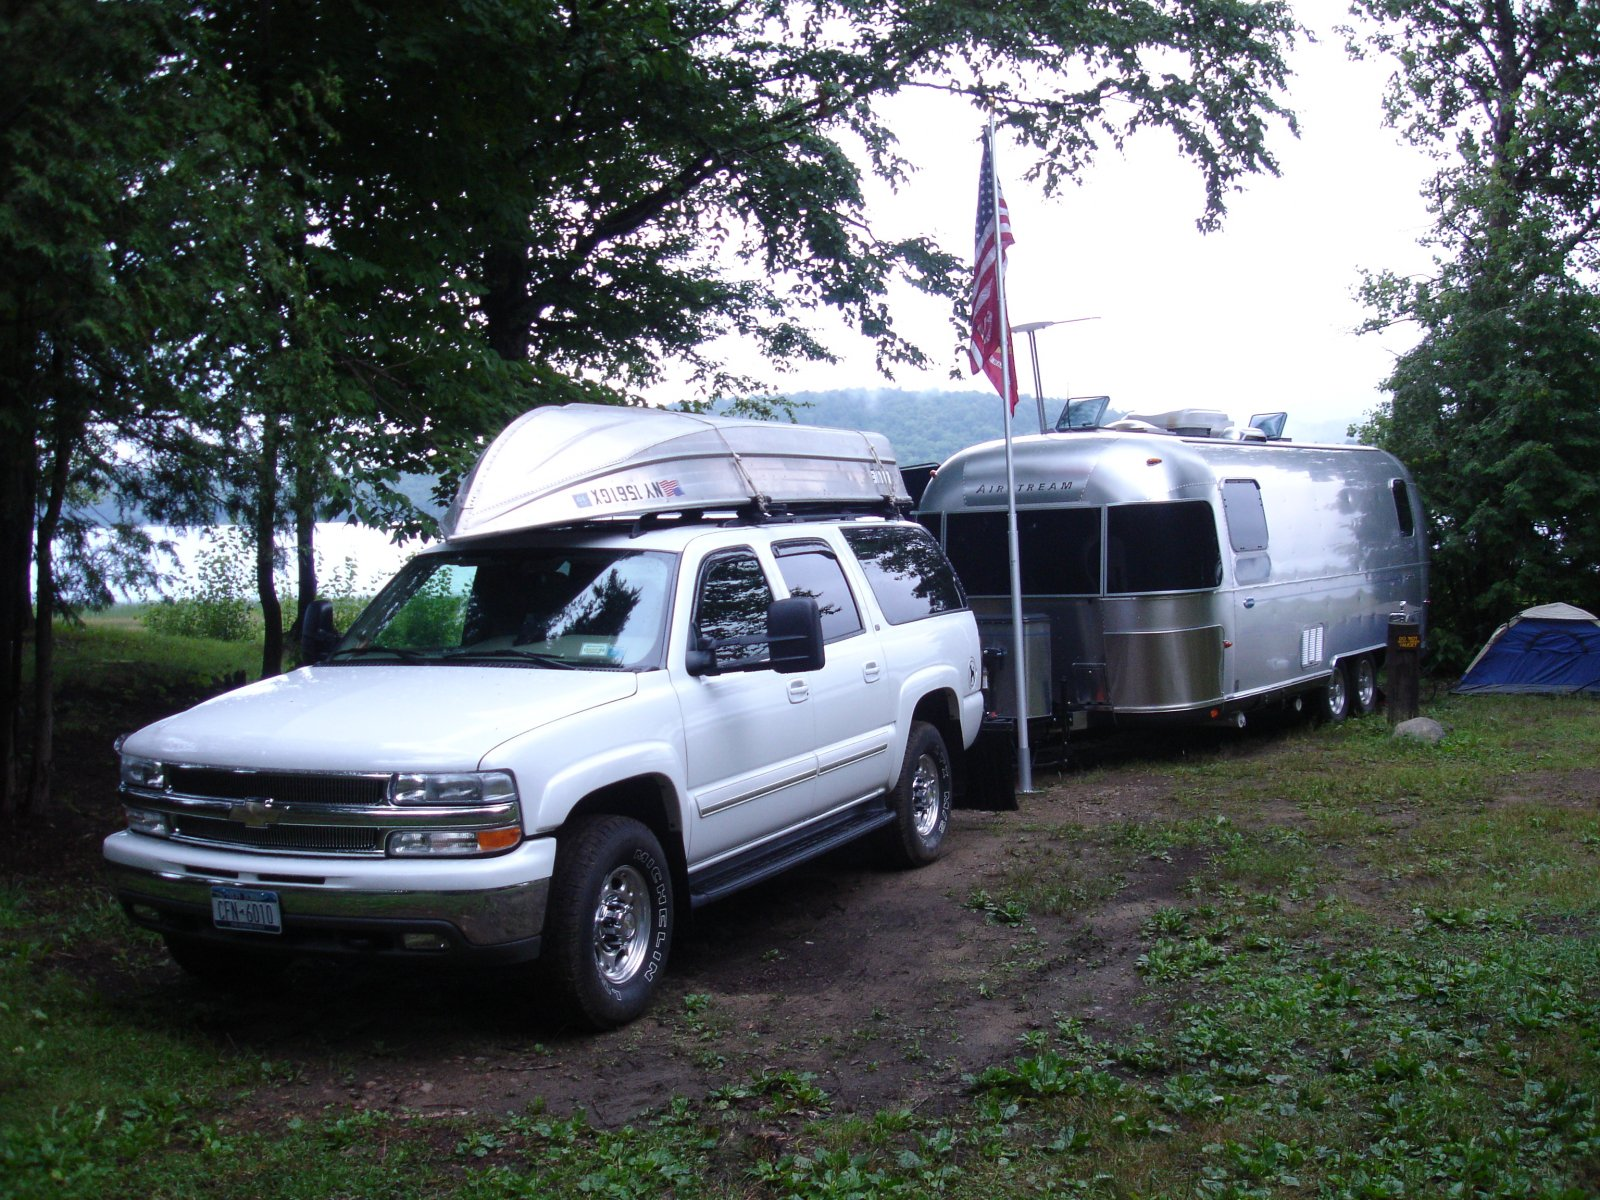 Click image for larger version  Name:PISECO LAKE CAMPING JULY 2008 031.jpg Views:74 Size:473.4 KB ID:75167